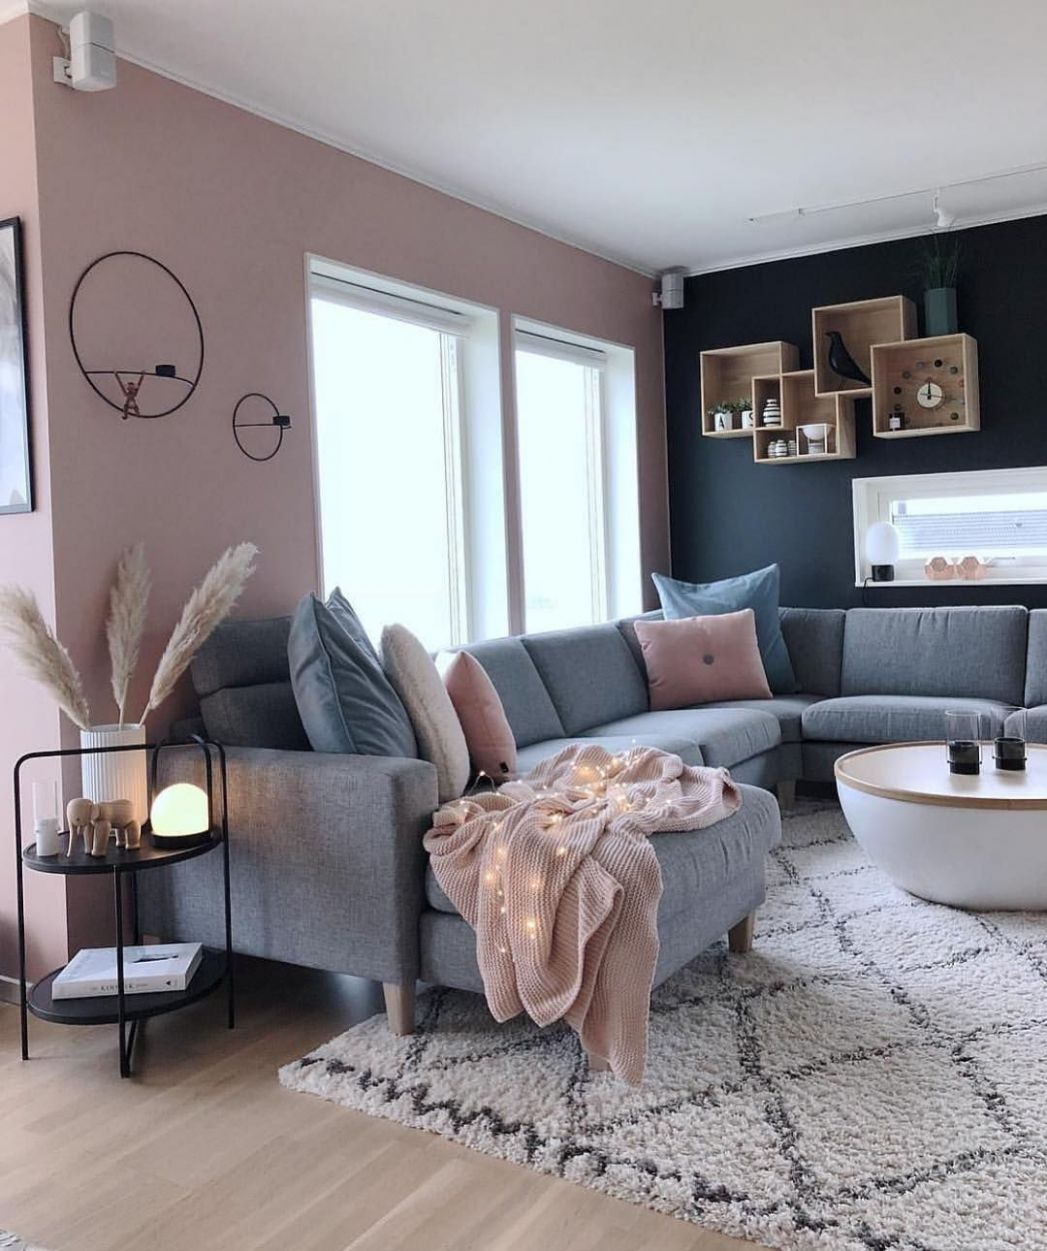 New] The 9 Best Home Decor (in the World) | On A Budget Apartment ..